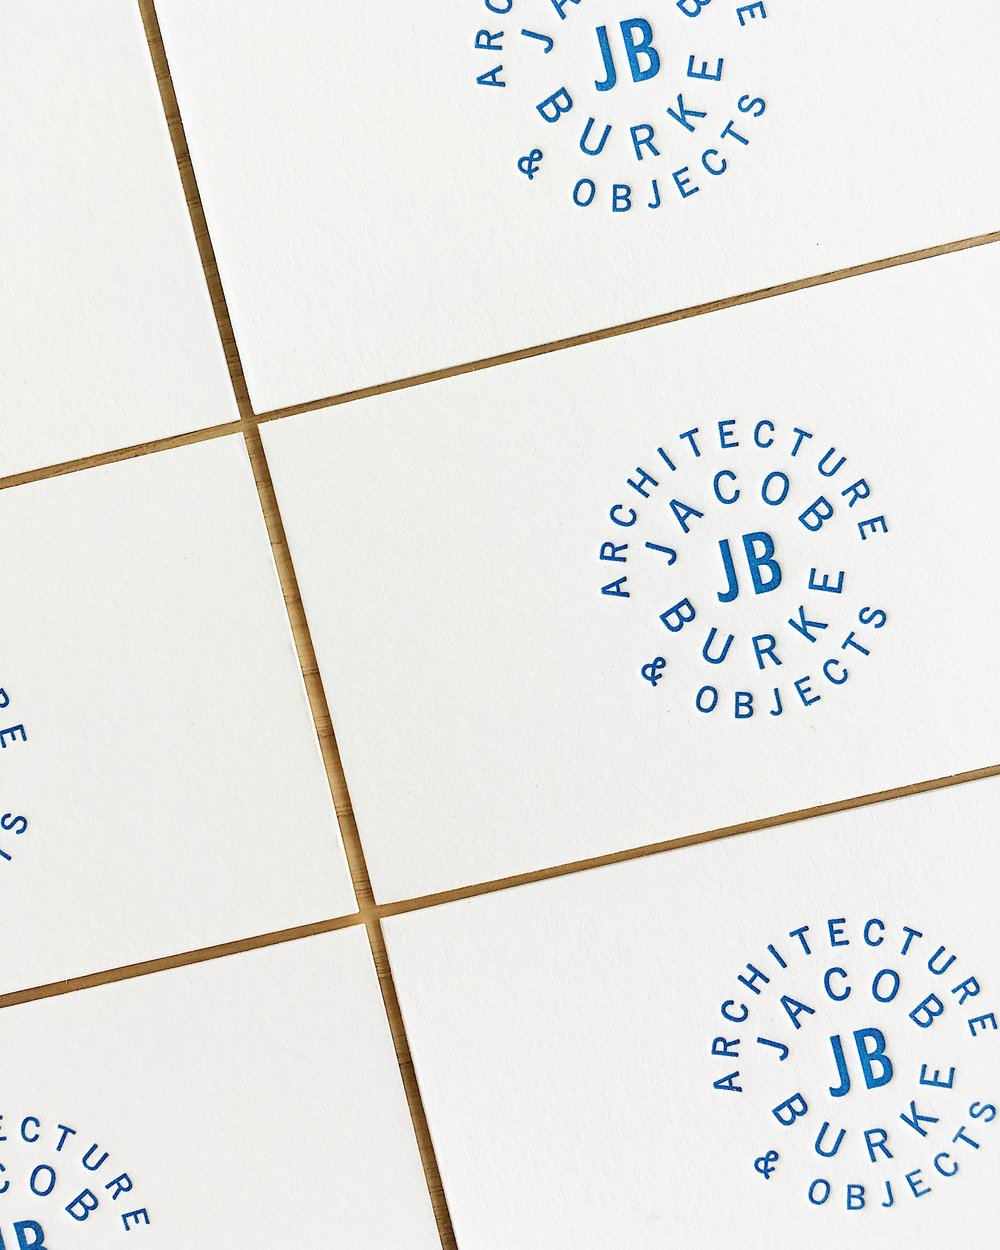 Design by Good South / Jacob Burke - Identity & Letterpress Cards